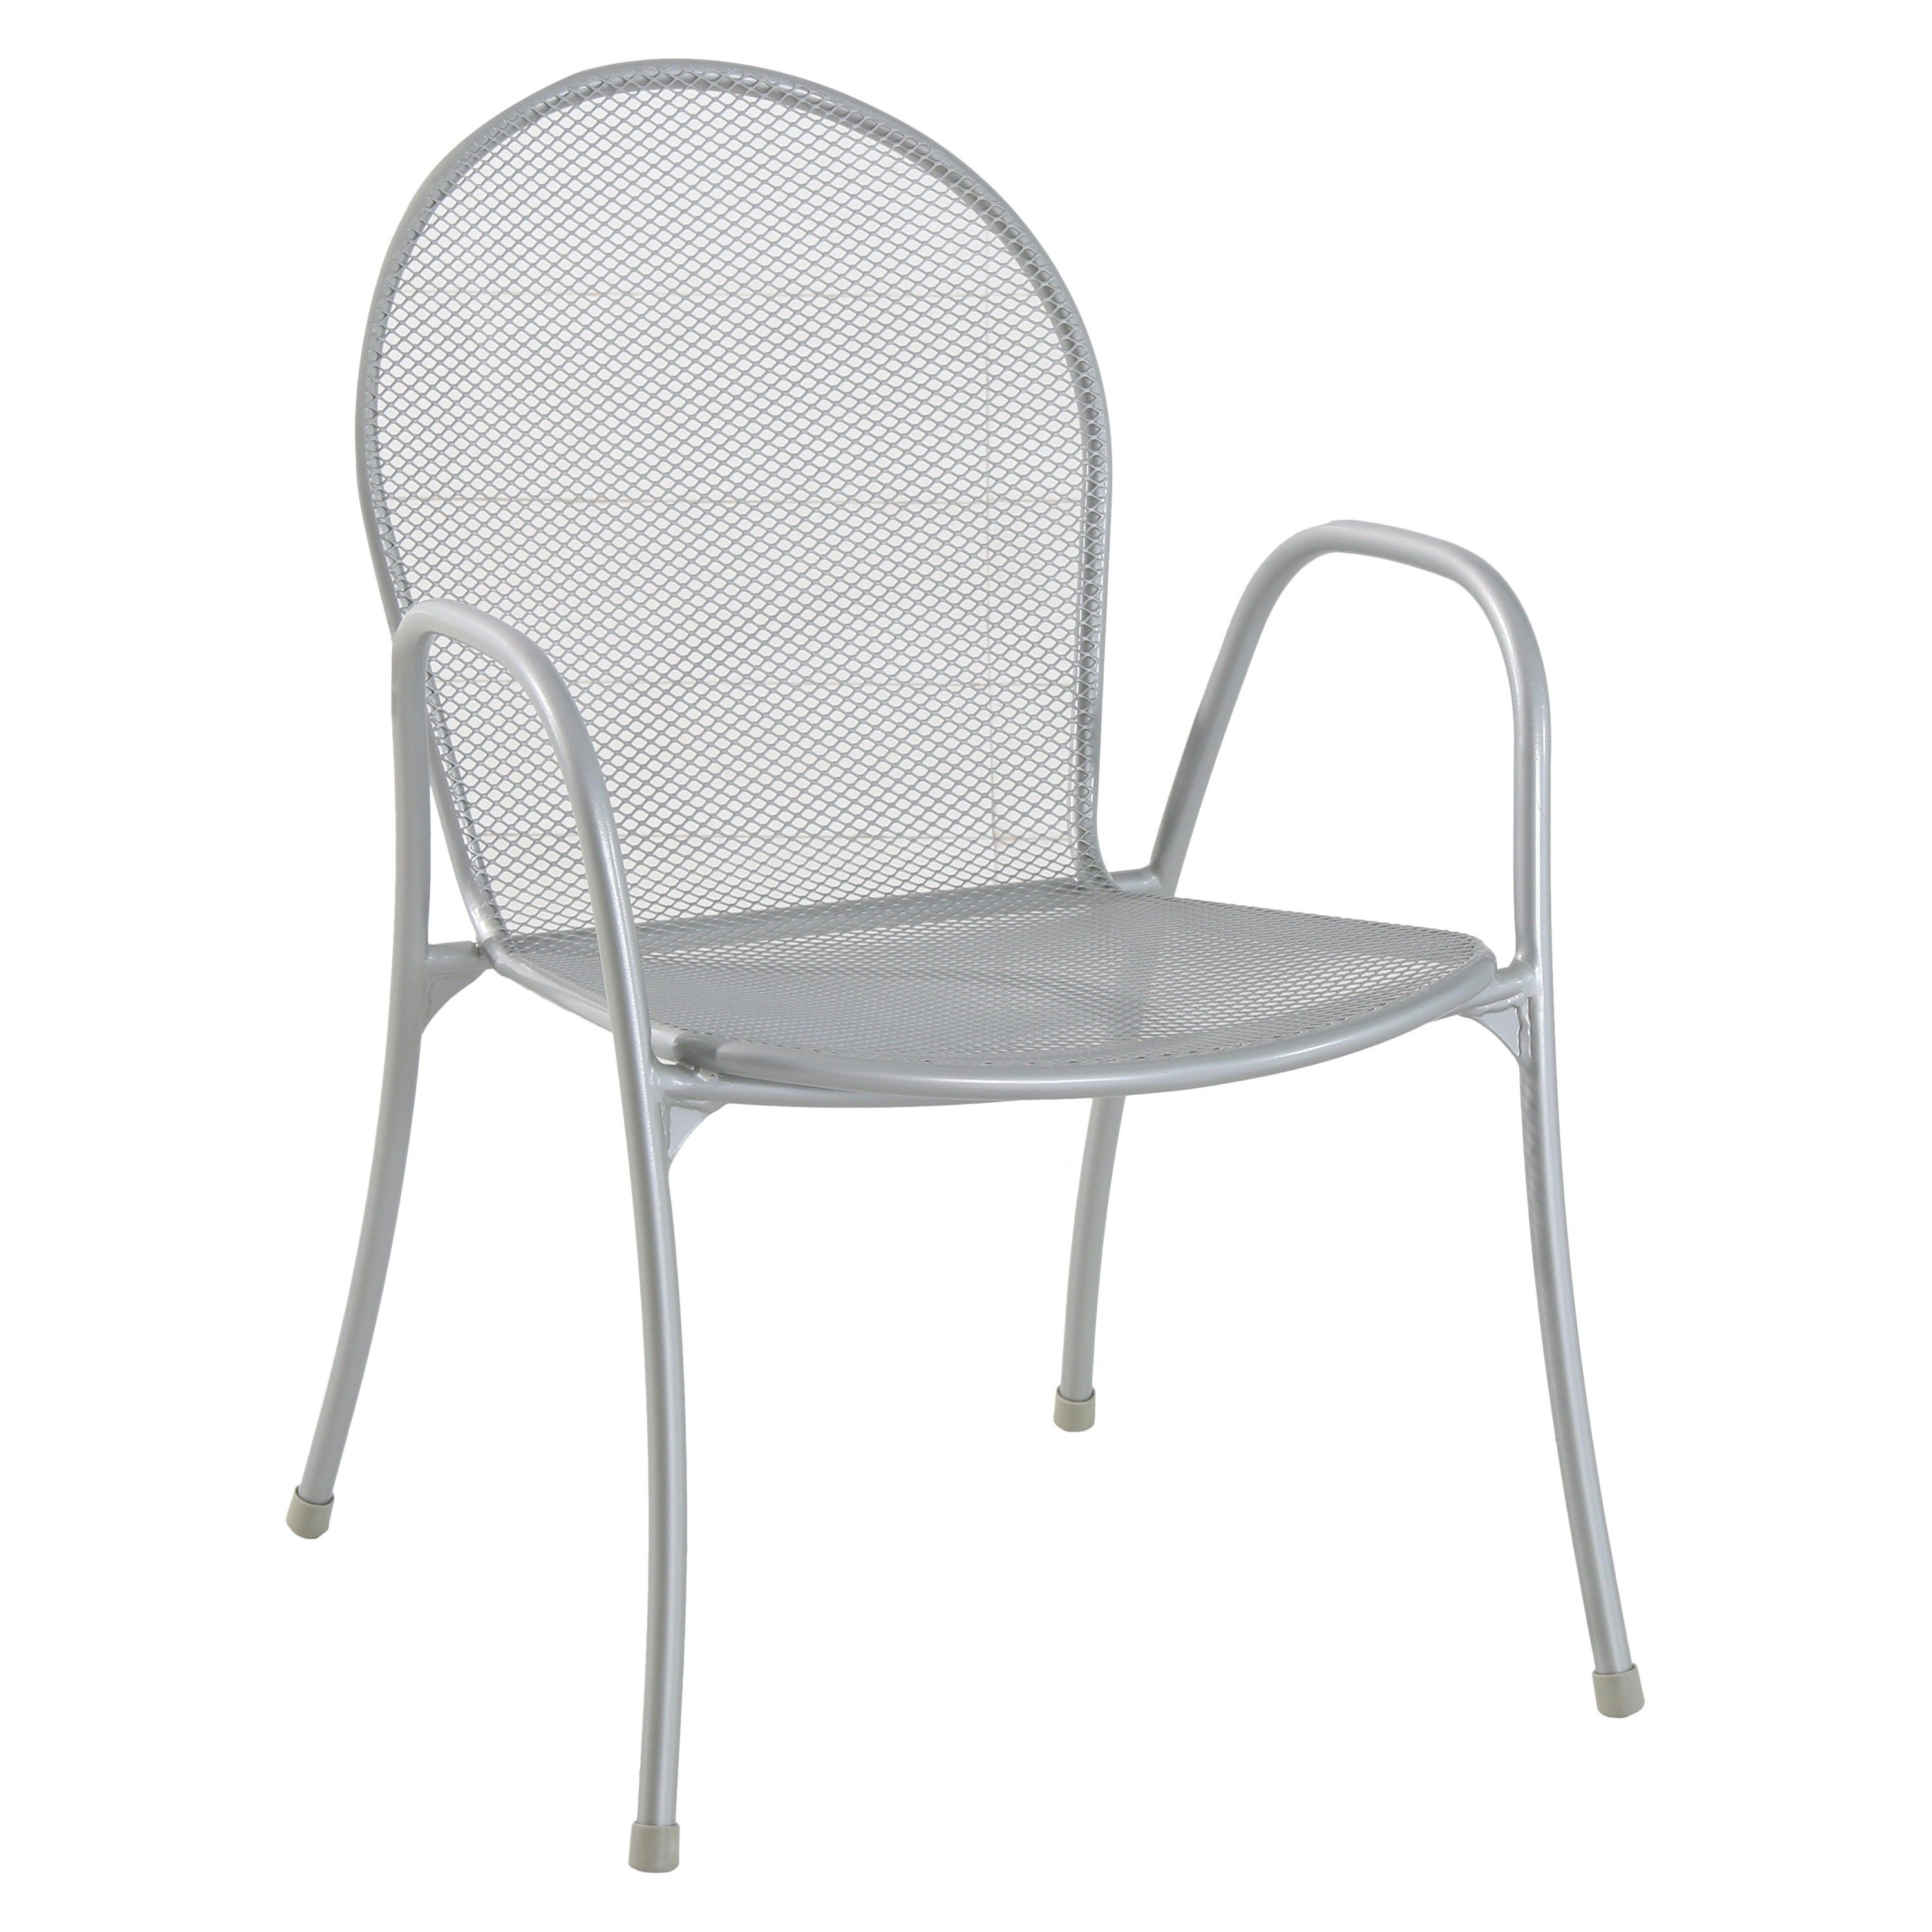 Mesh Patio Chairs The Carmack Metal Mesh Dining Patio Chair From Threshold